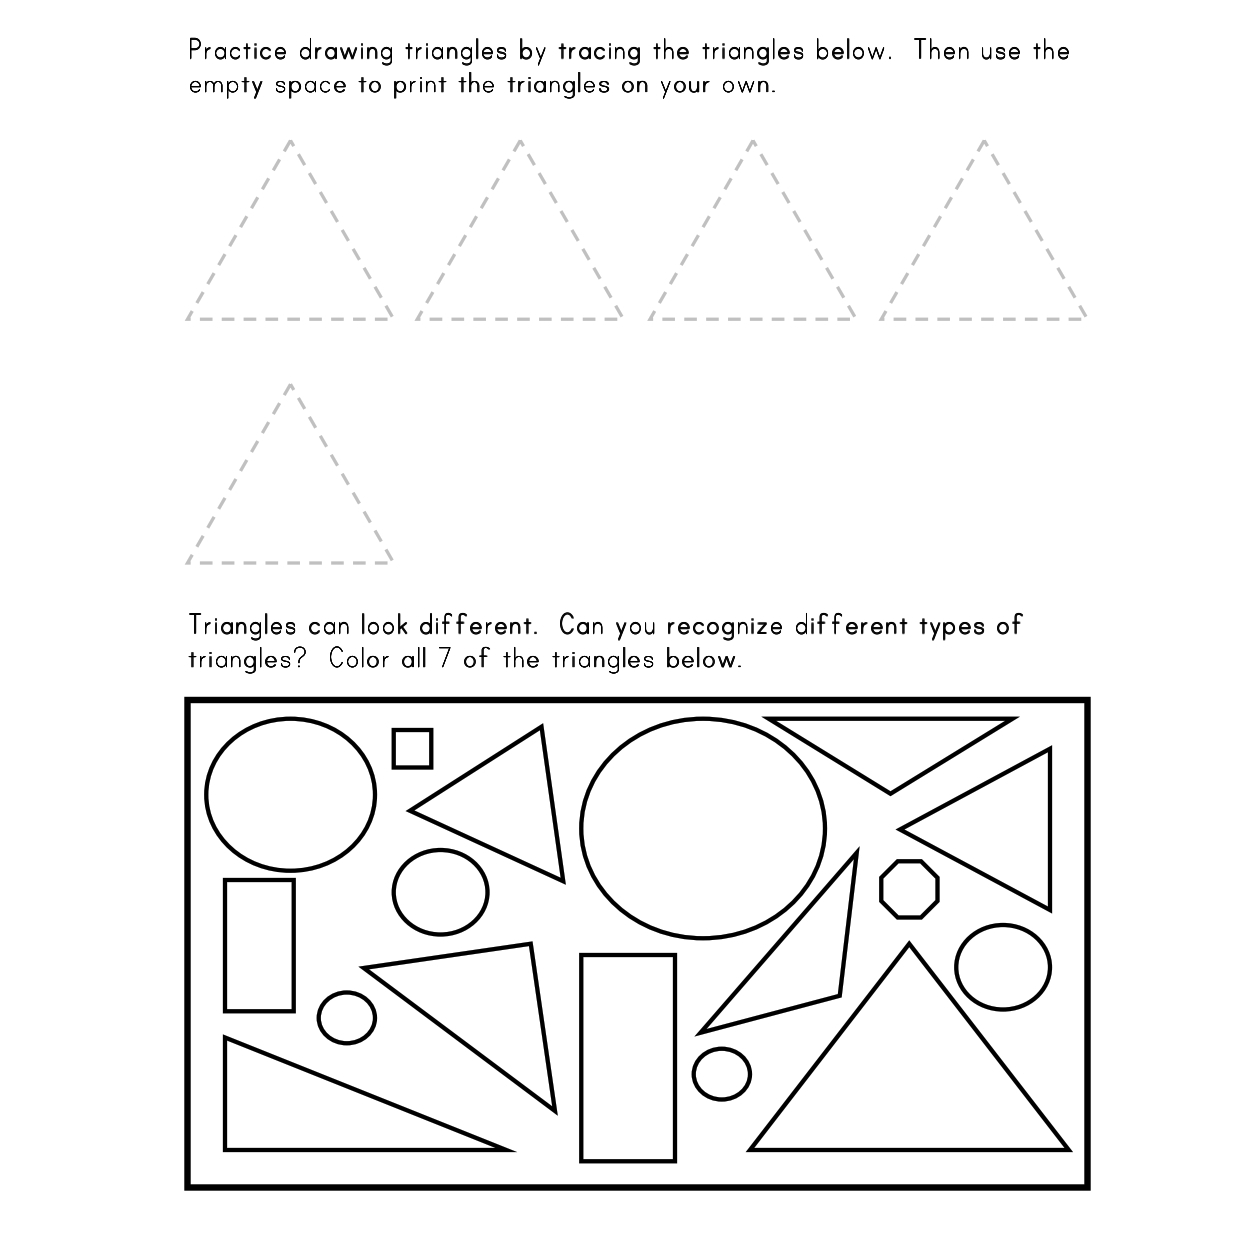 Worksheet Soil Texture Triangle Worksheet Grass Fedjp